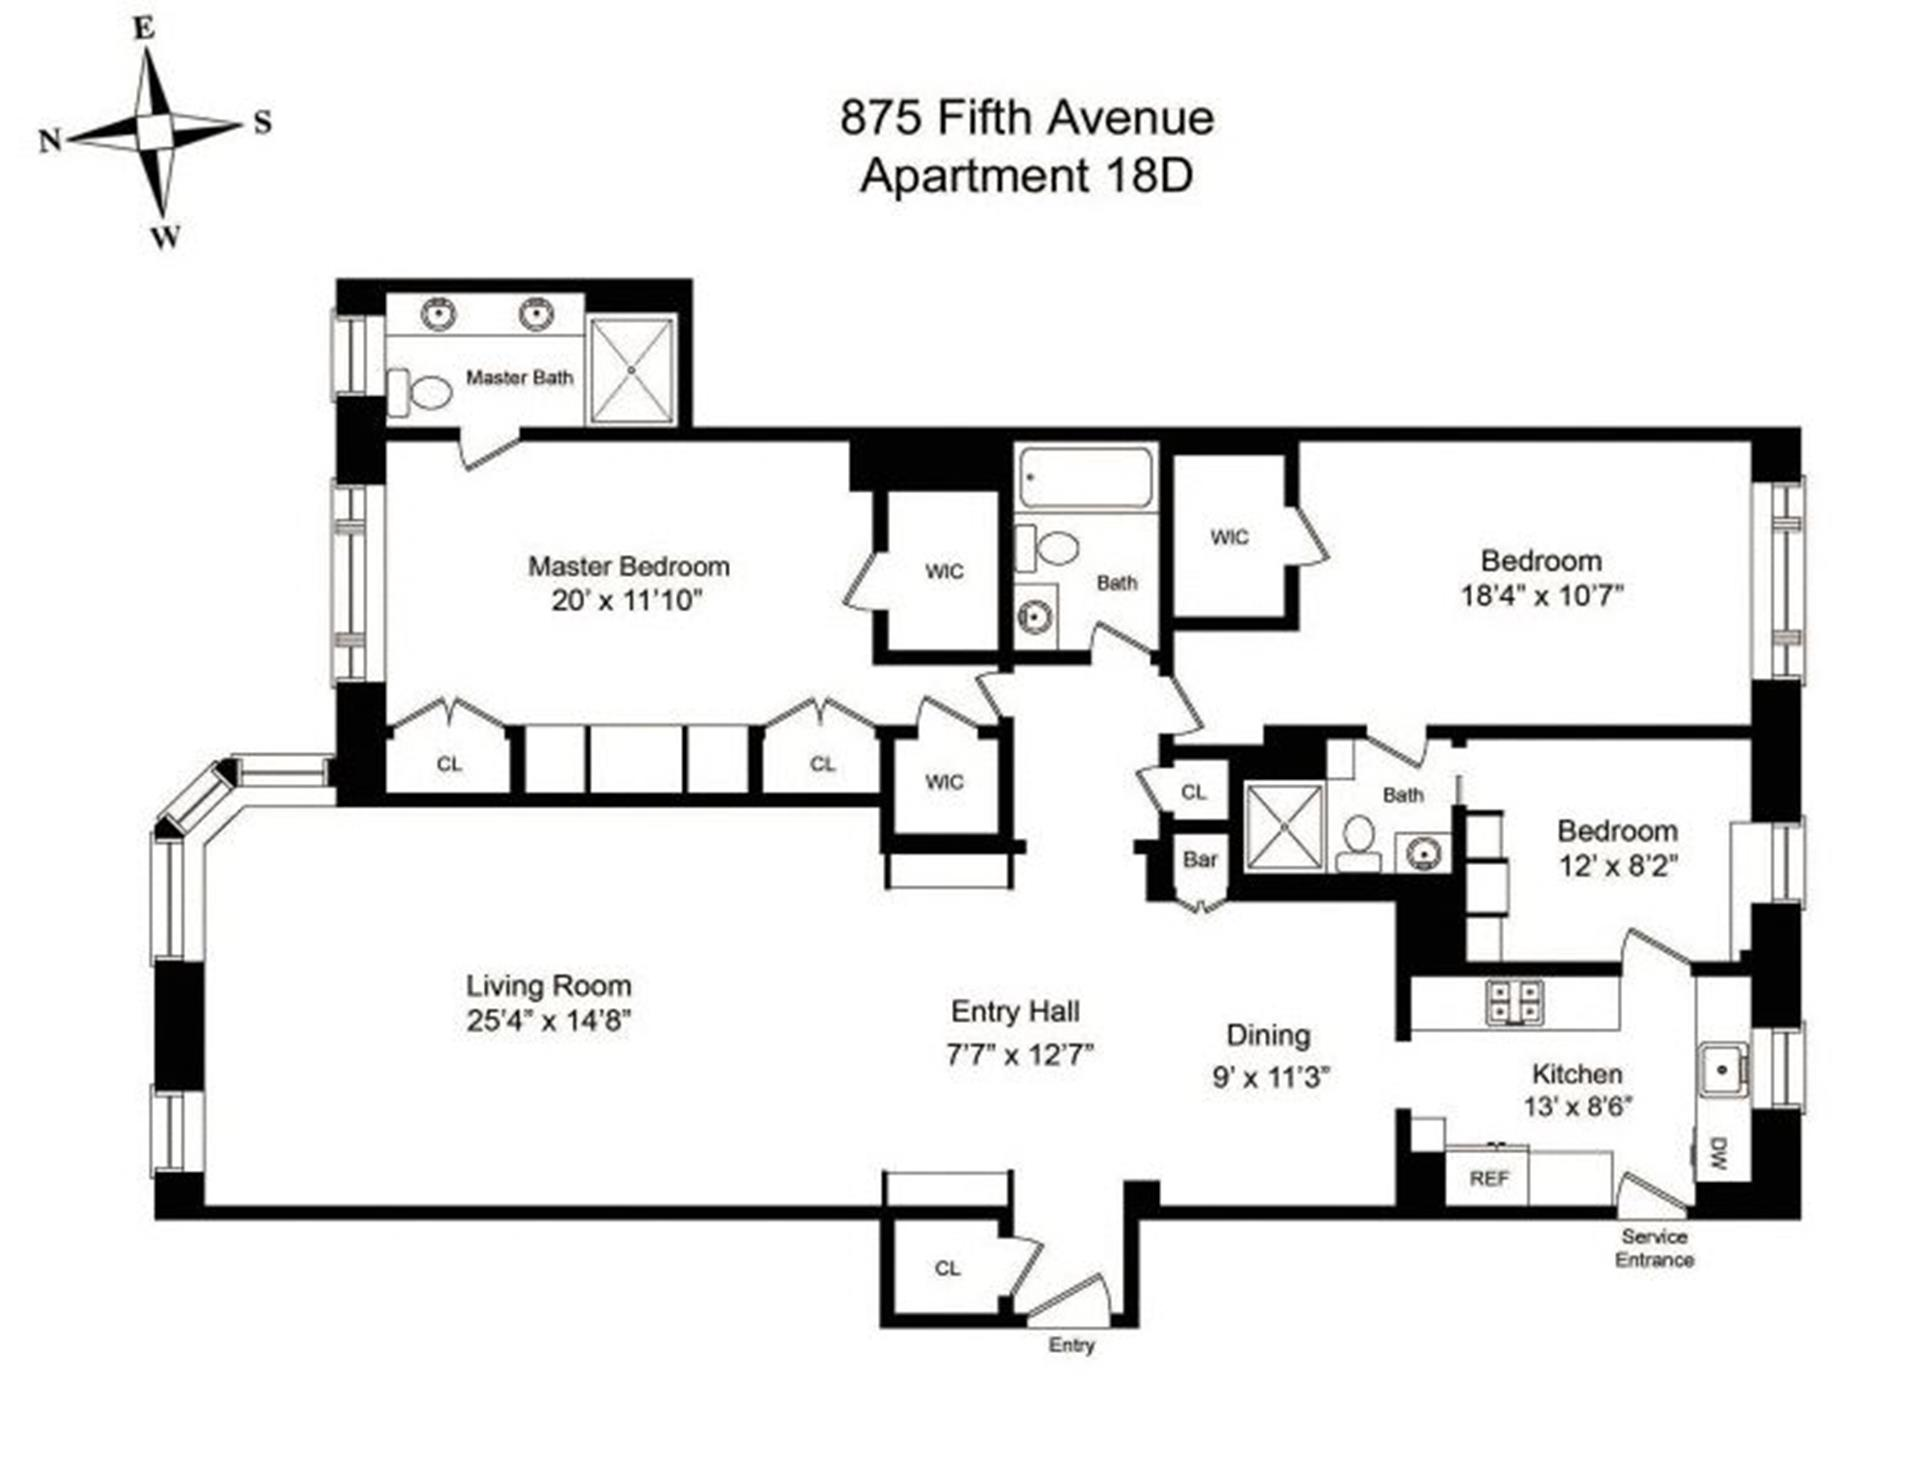 Floor plan of 875 Fifth Avenue, 18D - Upper East Side, New York